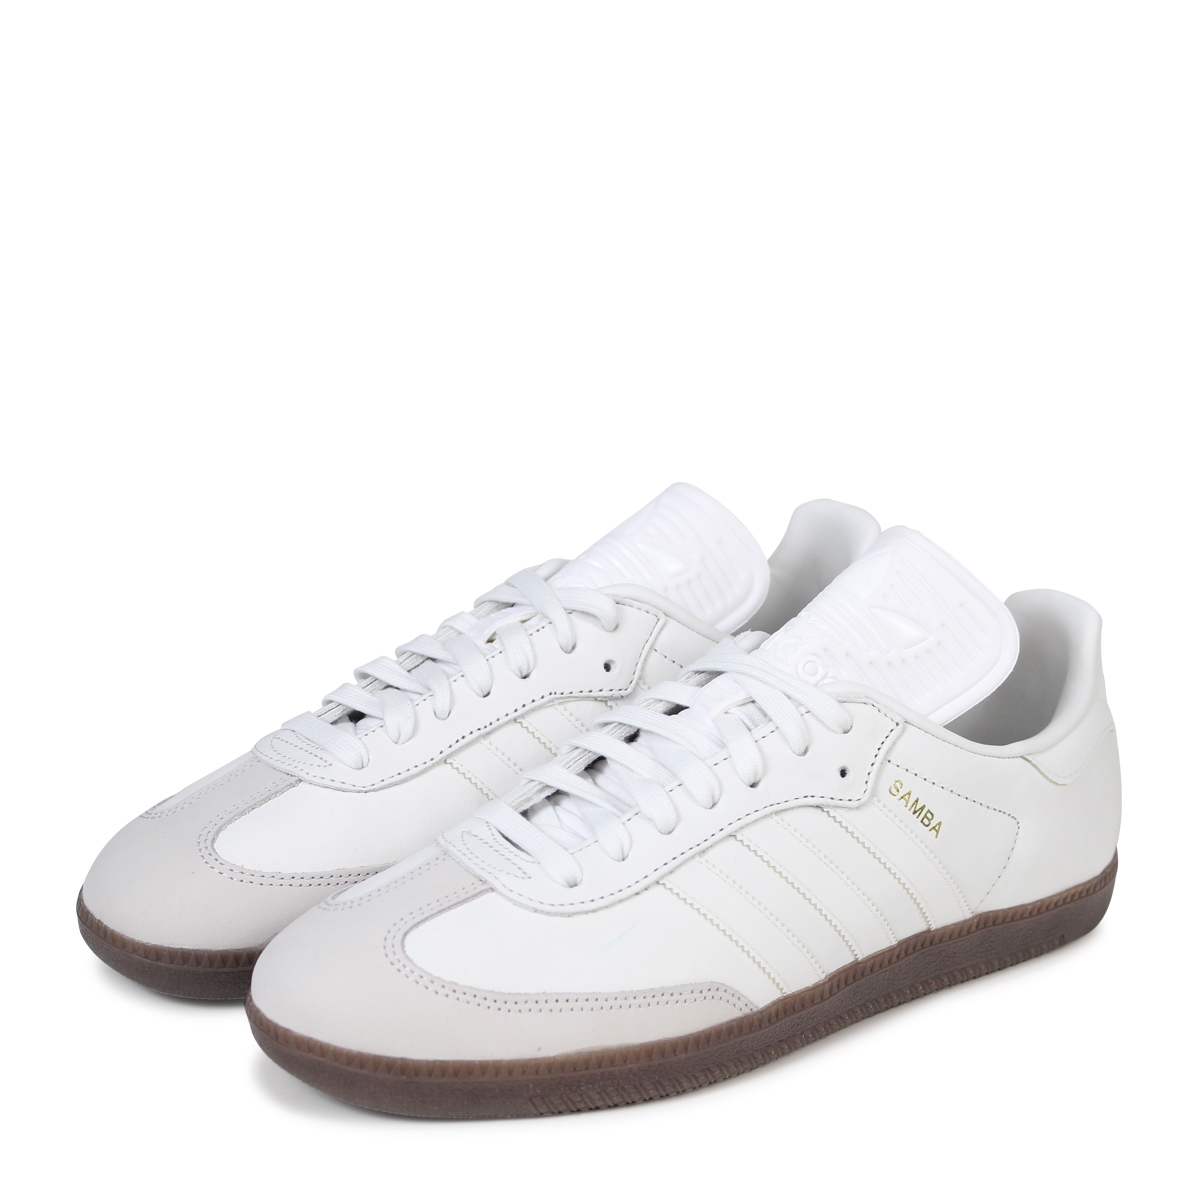 adidas Originals SAMBA CLASSIC OG Adidas samba sneakers men BZ0226 white originals [load planned Shinnyu load in reservation product 3/20 containing] ...